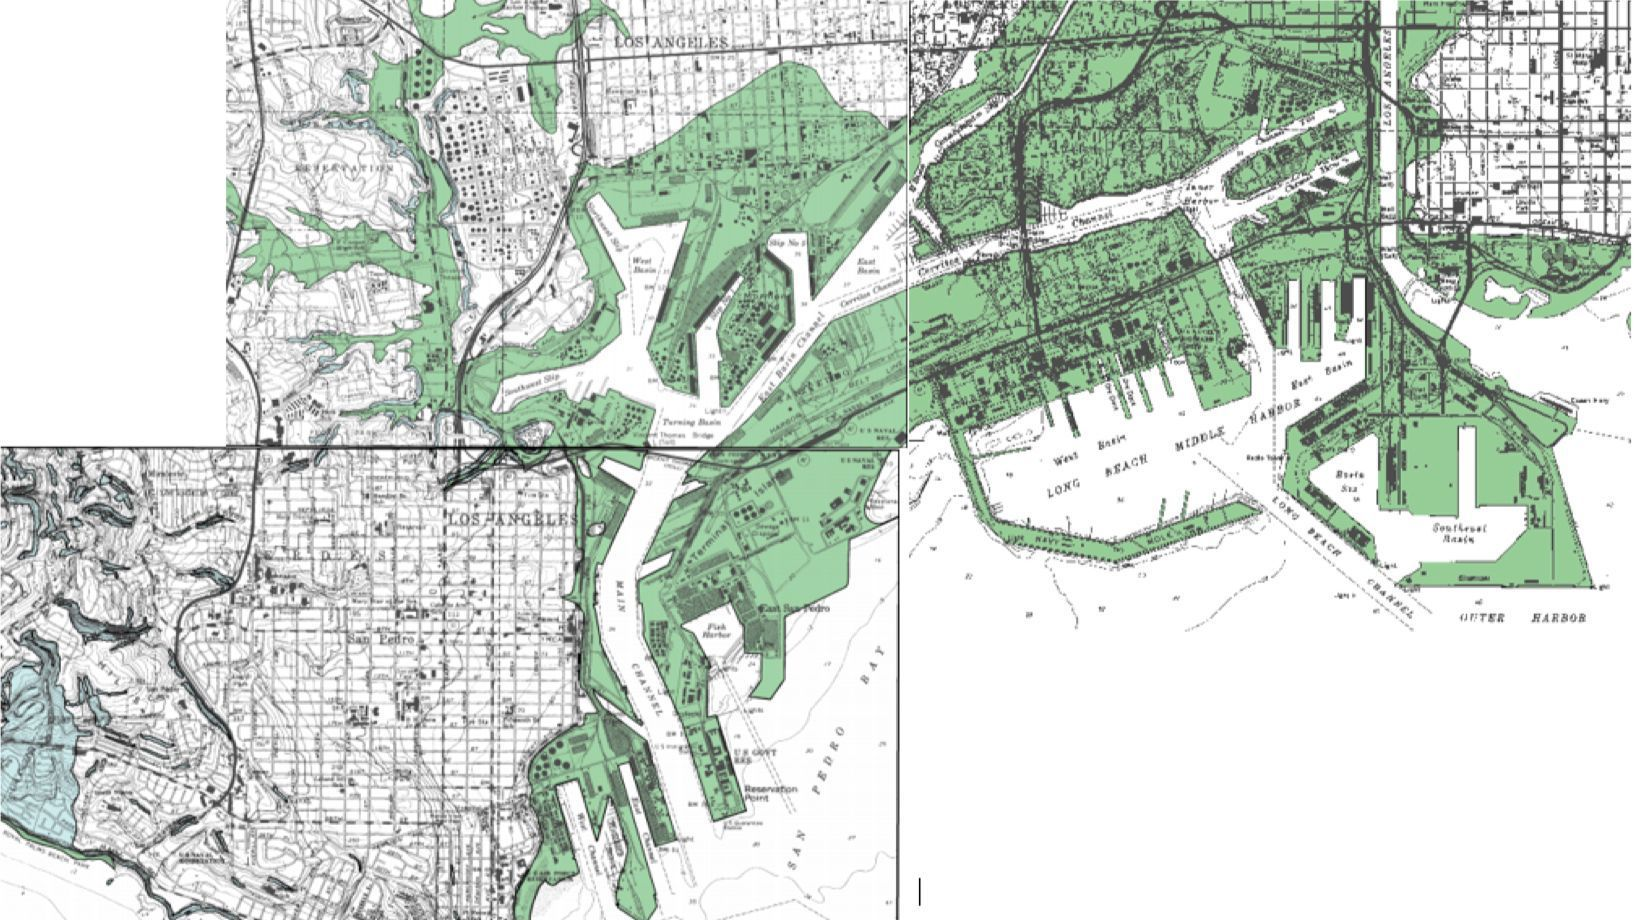 A state map shows areas in green at risk of liquefaction in an earthquake. The ports of Los Angeles and Long Beach are at risk of liquefaction in a major earthquake on the Palos Verdes fault.